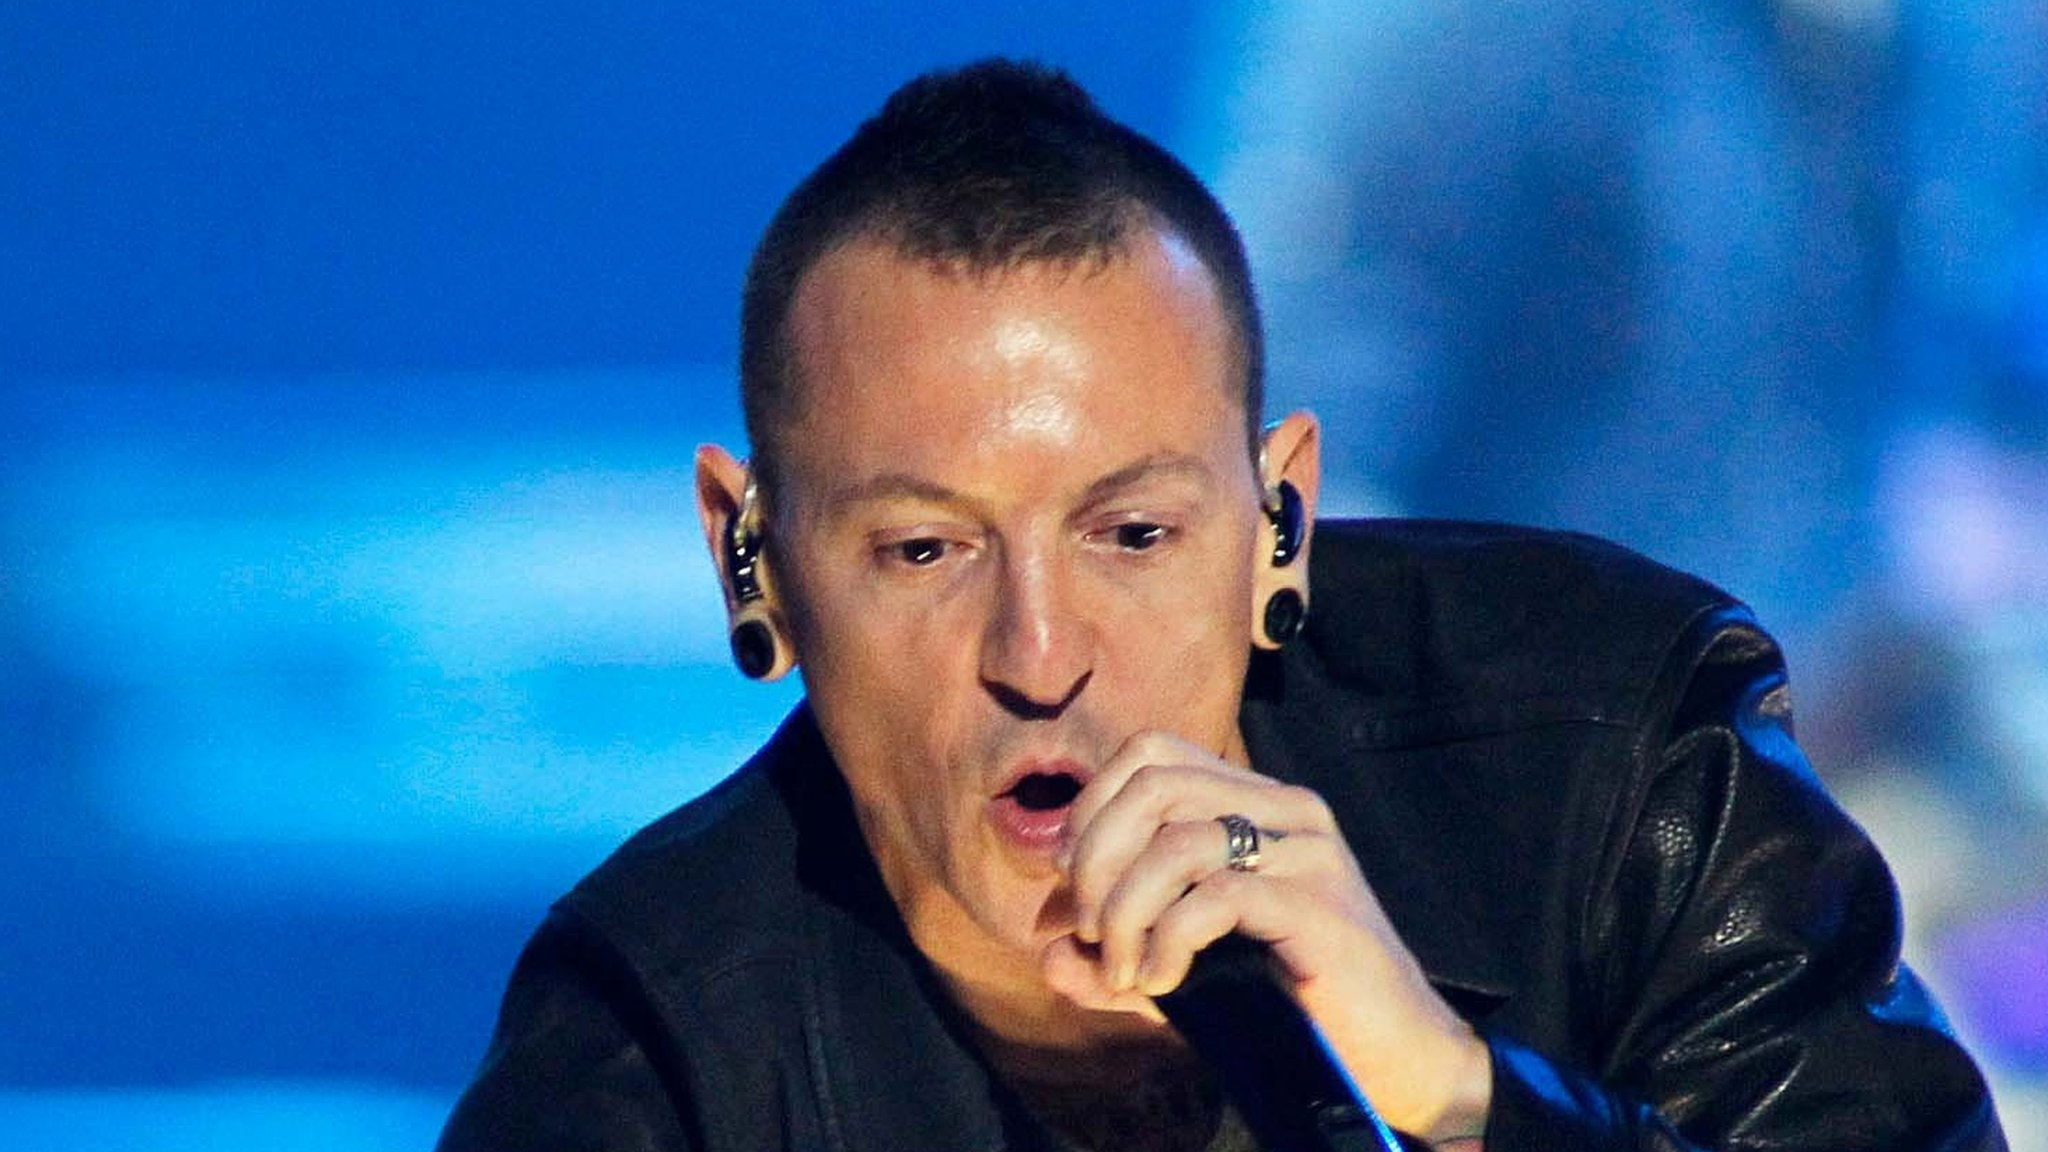 Chester Bennington: Linkin Park vocalist 'took his own life'